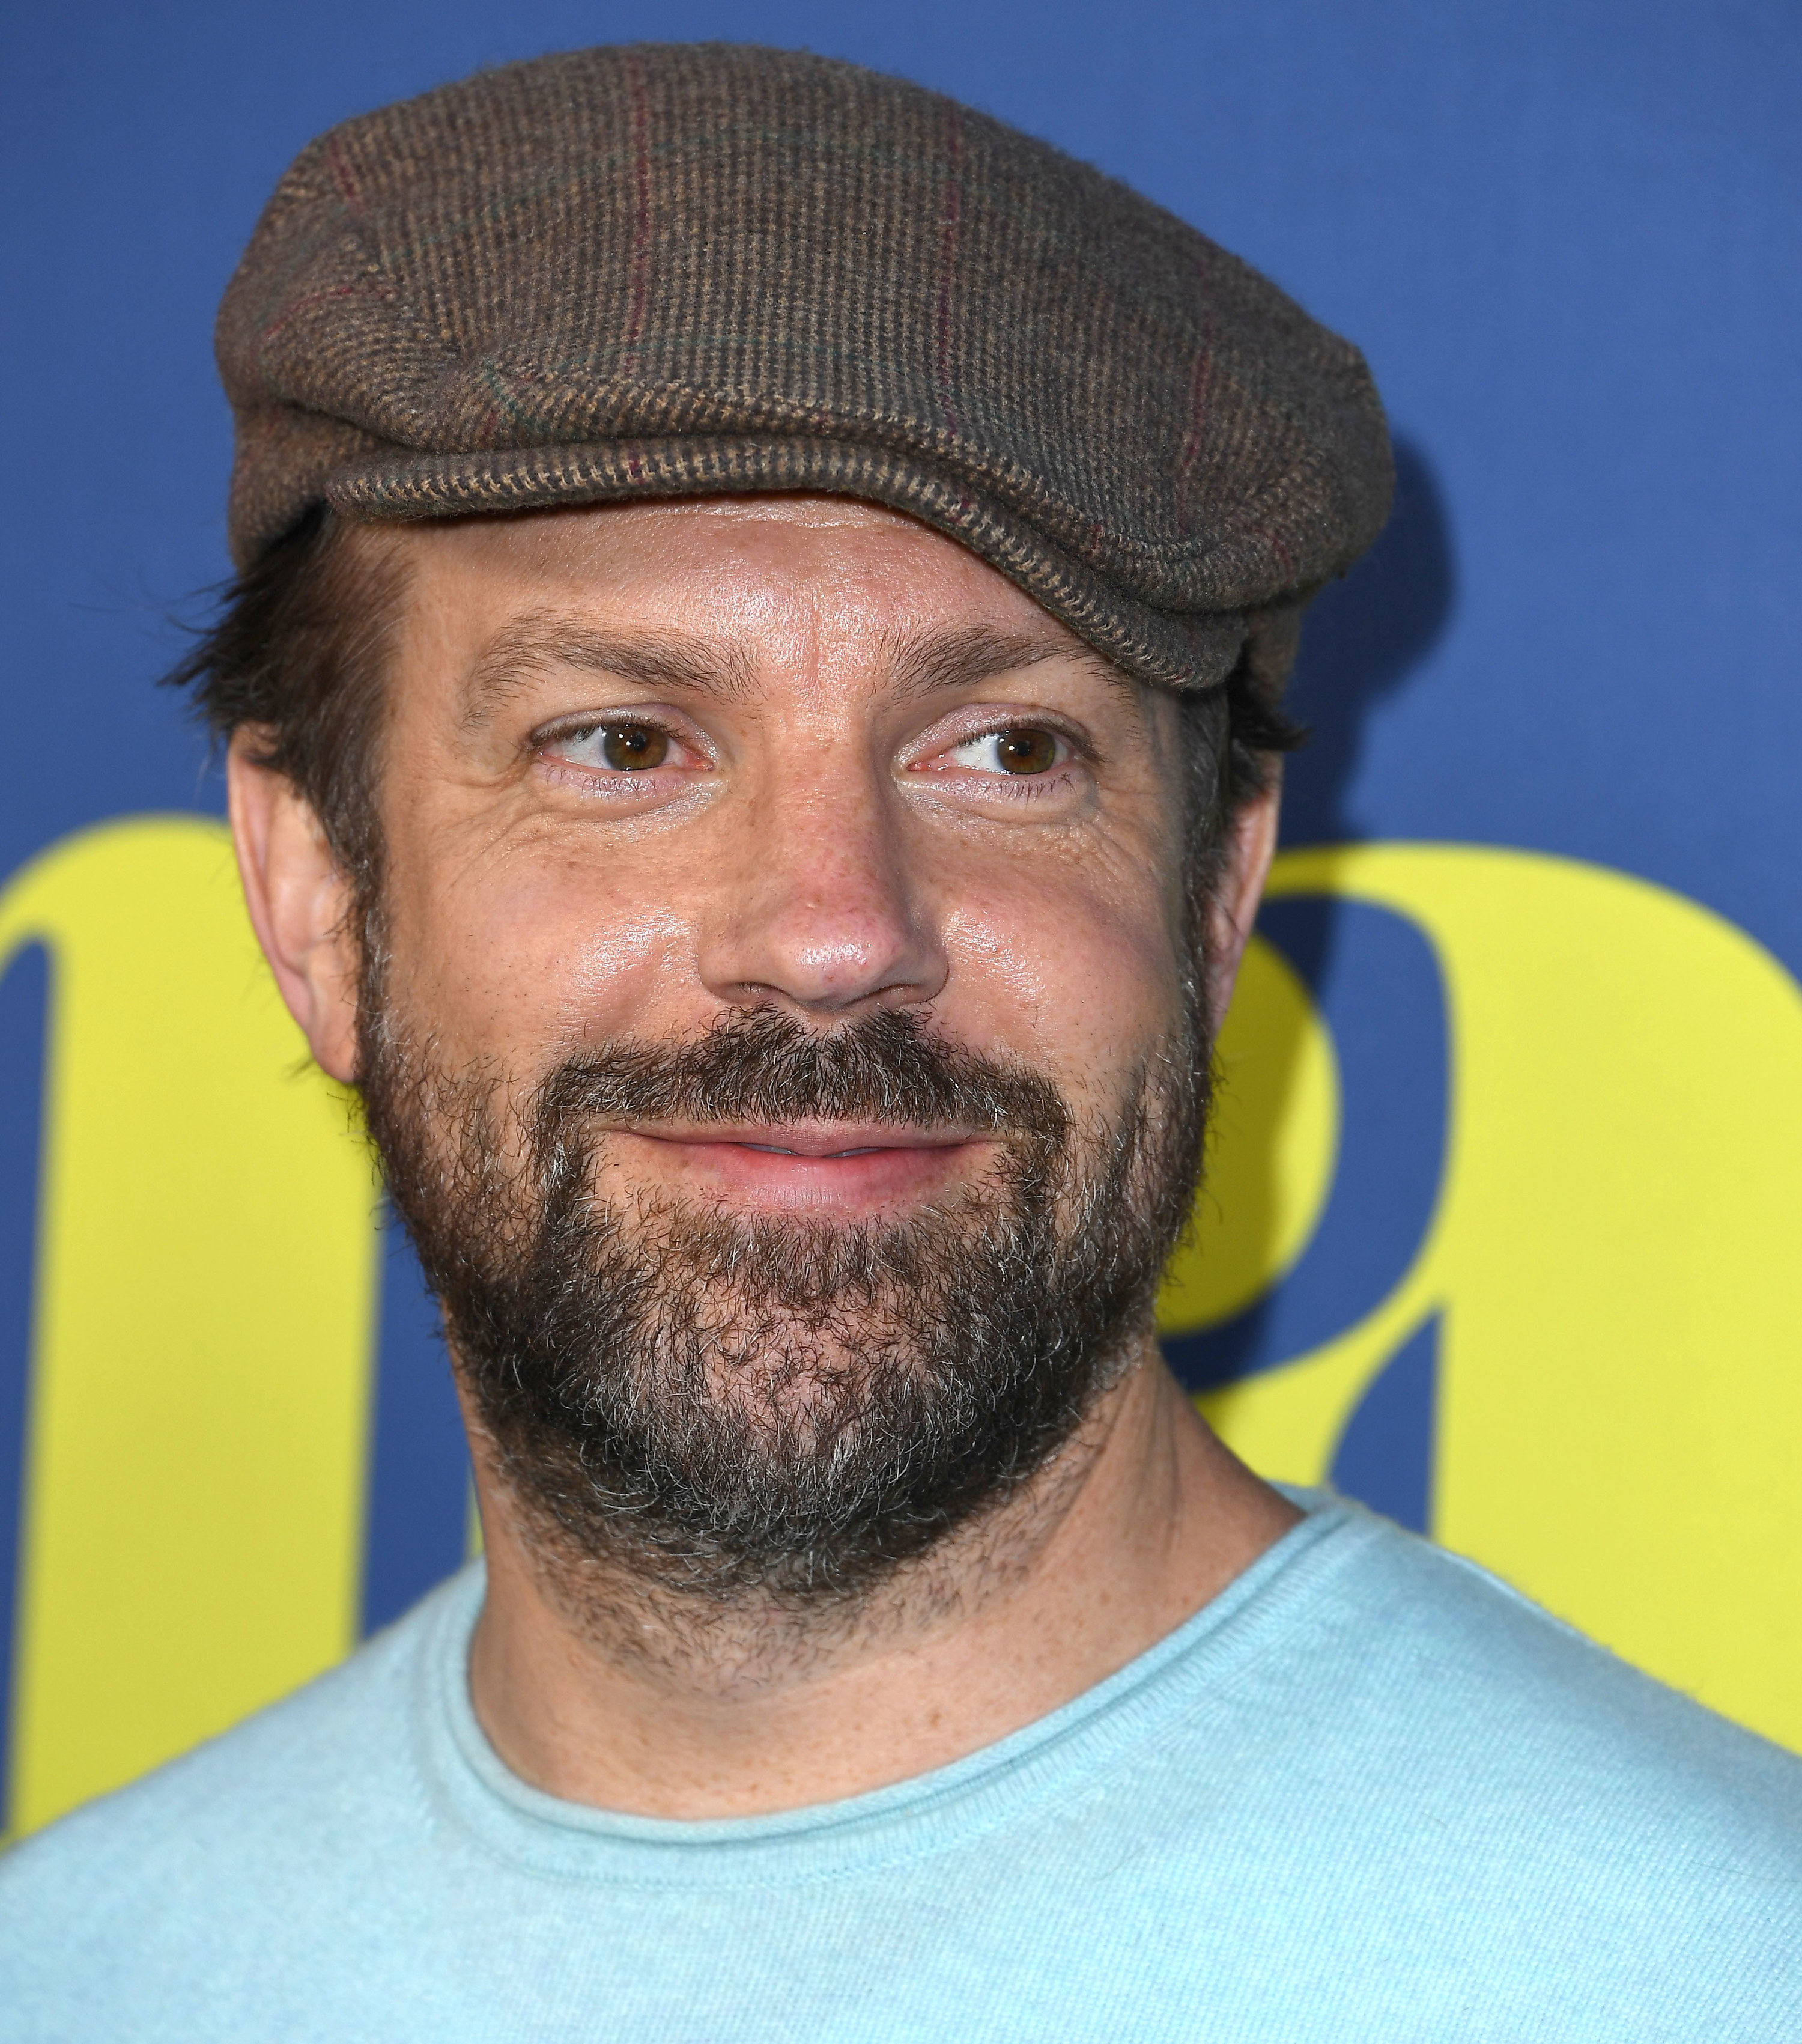 Jason Sudeikis is photographed at a film screening in 2019